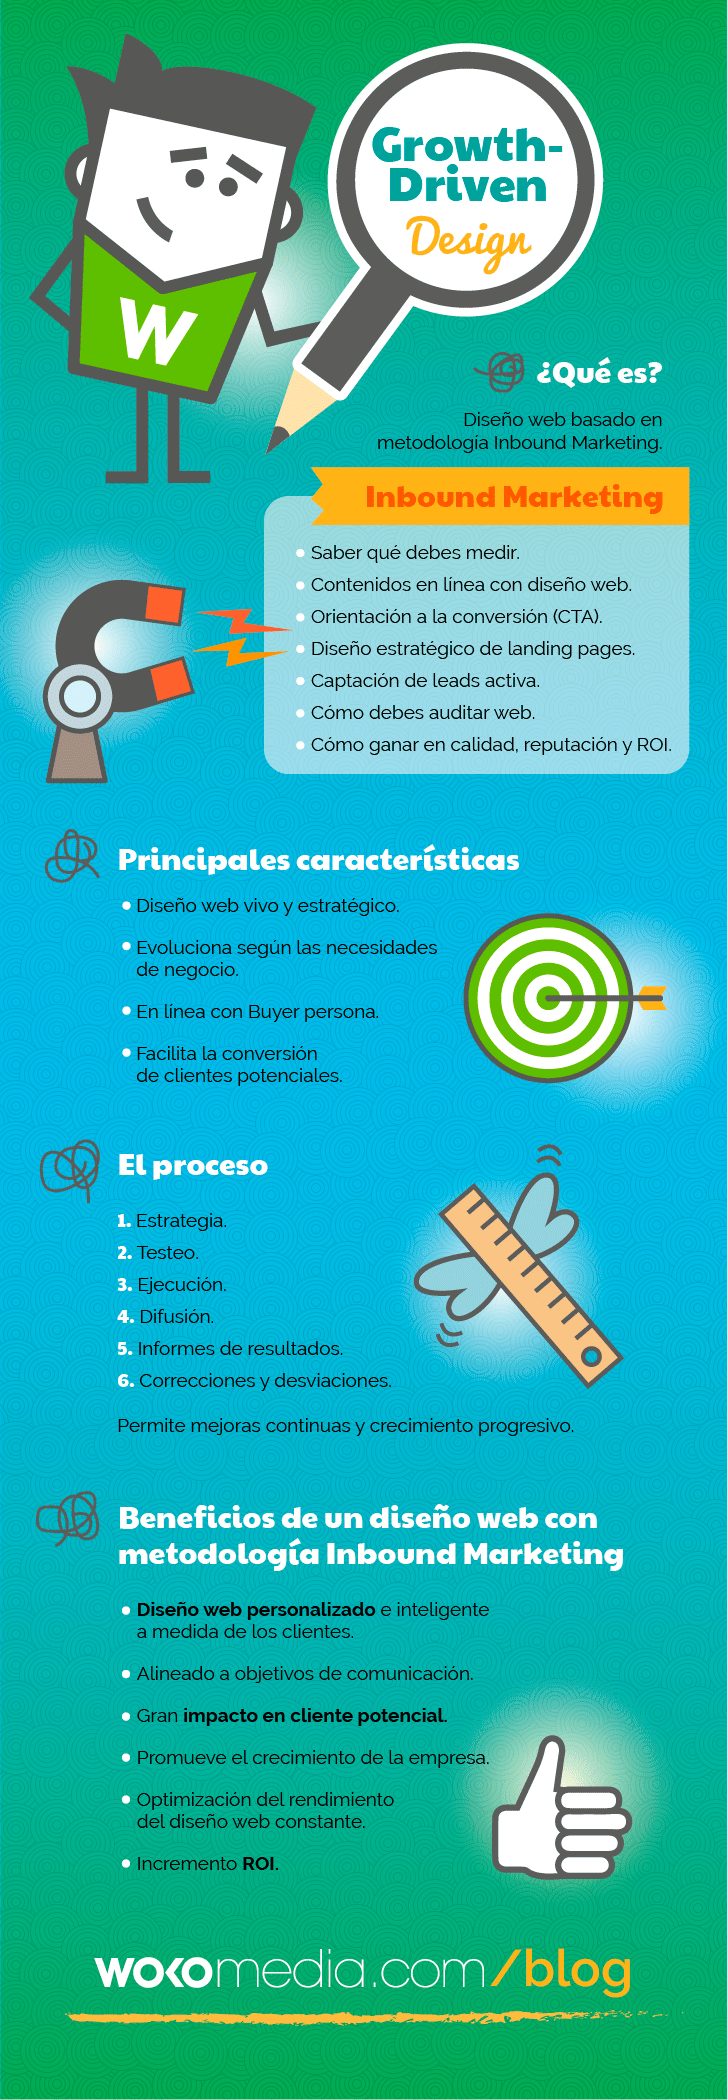 Diseño web con metodología Inbound Marketing